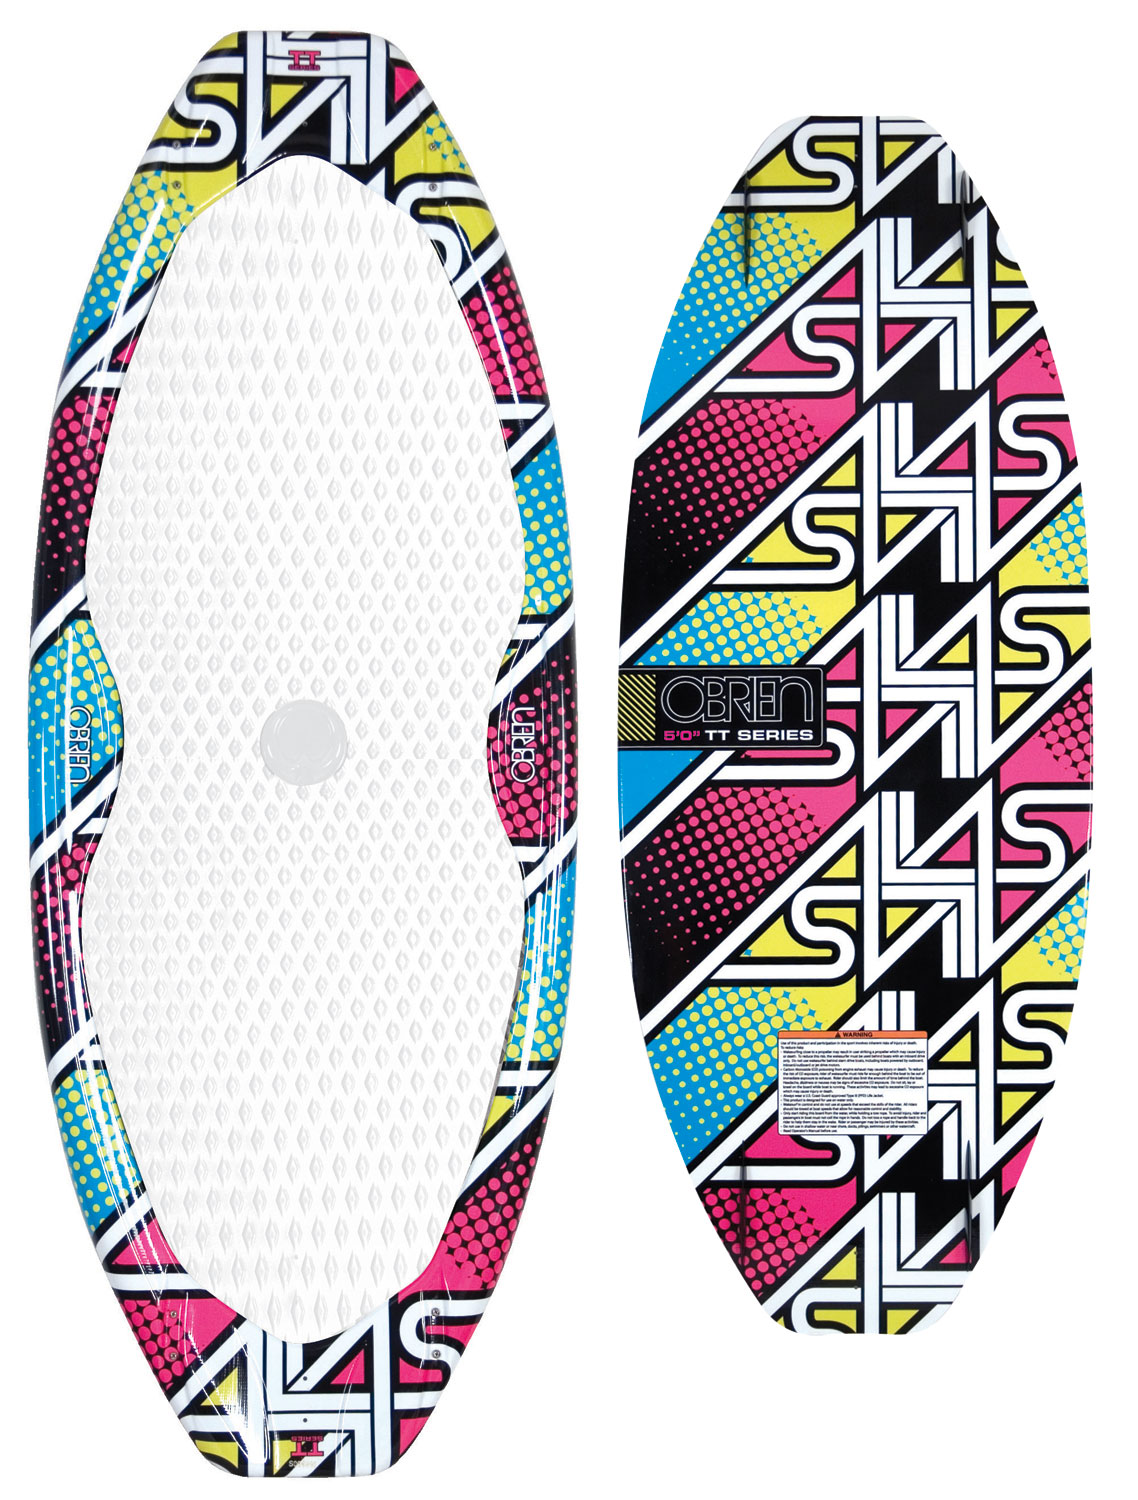 Surf Blending the line between surfing and skating. O'Brien's Alias TT surfer is a true symmetrical twin tip board. Designed to be ridden centered on the board, the deck is fully dished out to give the board the feel and control of a concave skate. A squash tip and tail give the board push and let you pump from way back on the wake. Ride switch, slide the lip, and spin 3s like never before. Quad side fins give just the right edge bite for most riders, but advanced riders can choose to run a single center fin or no fins at all. Shaped by Russ Wilde and Chris Johnson. - $233.95